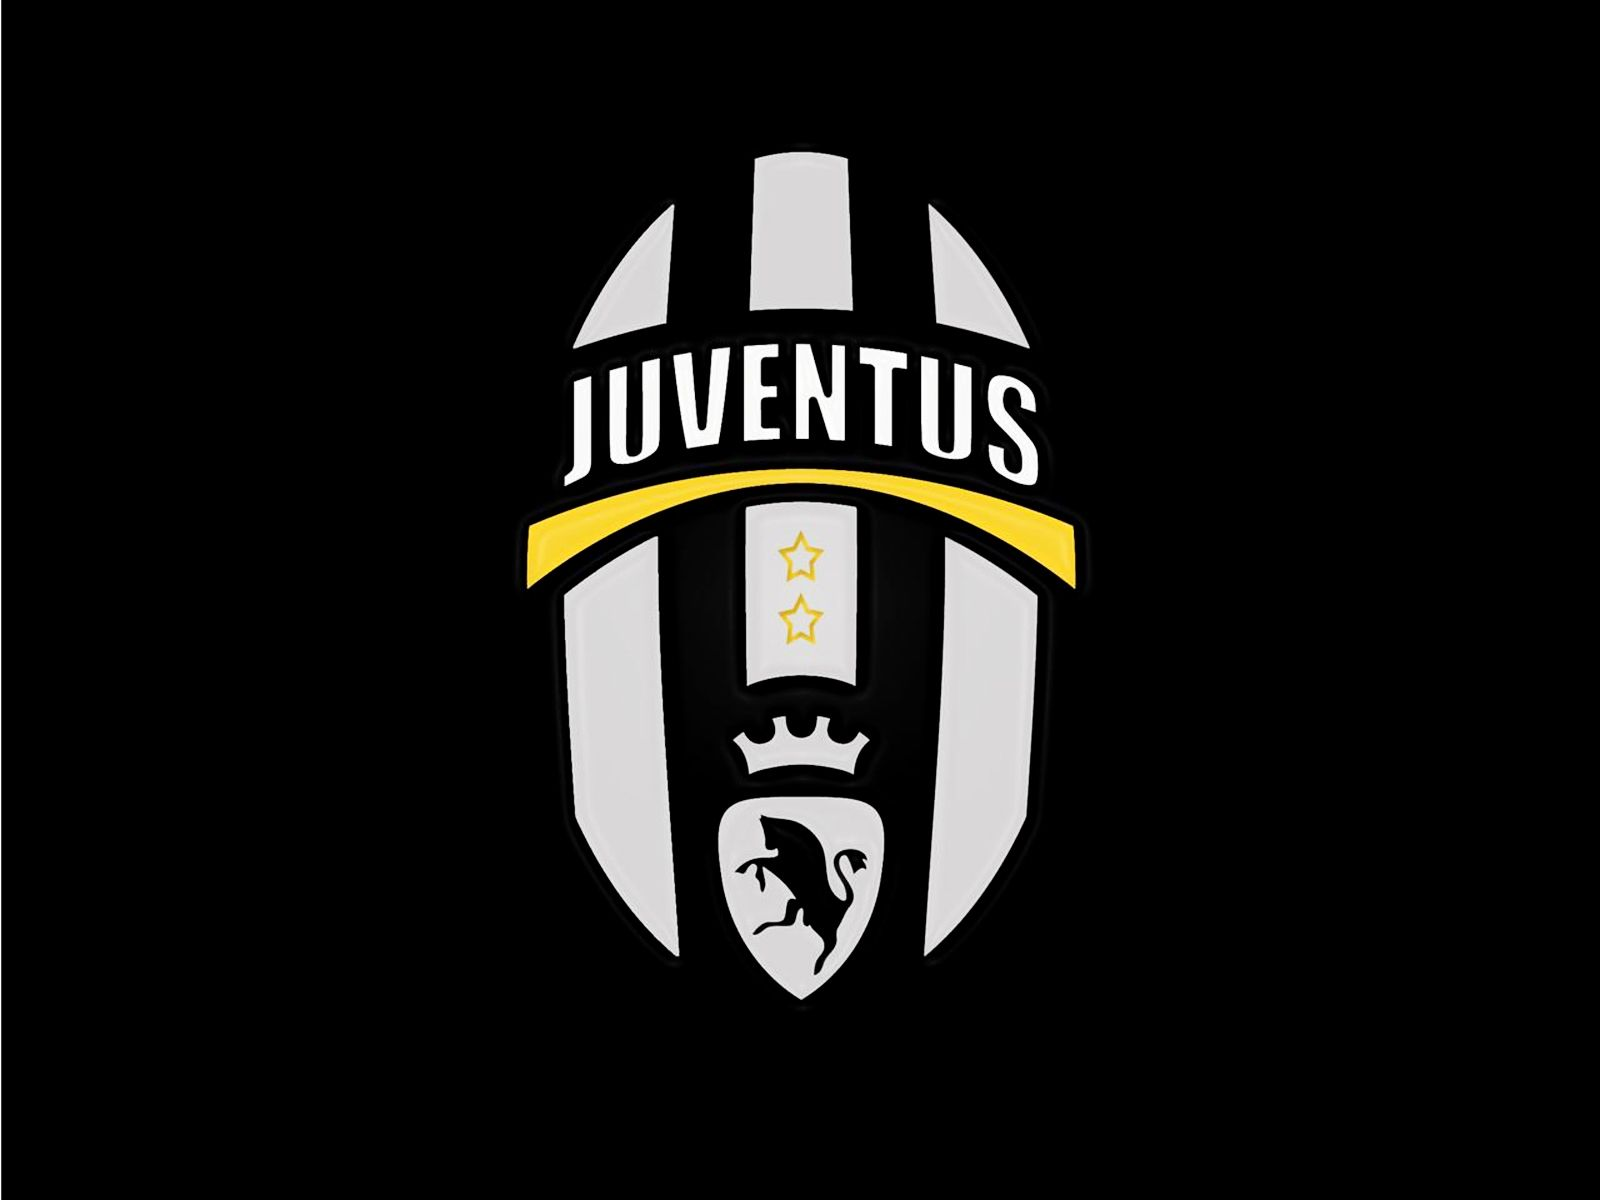 Juventus Logo Full Hd Wallpaper Cloud Juventus Gambar Desain Logo